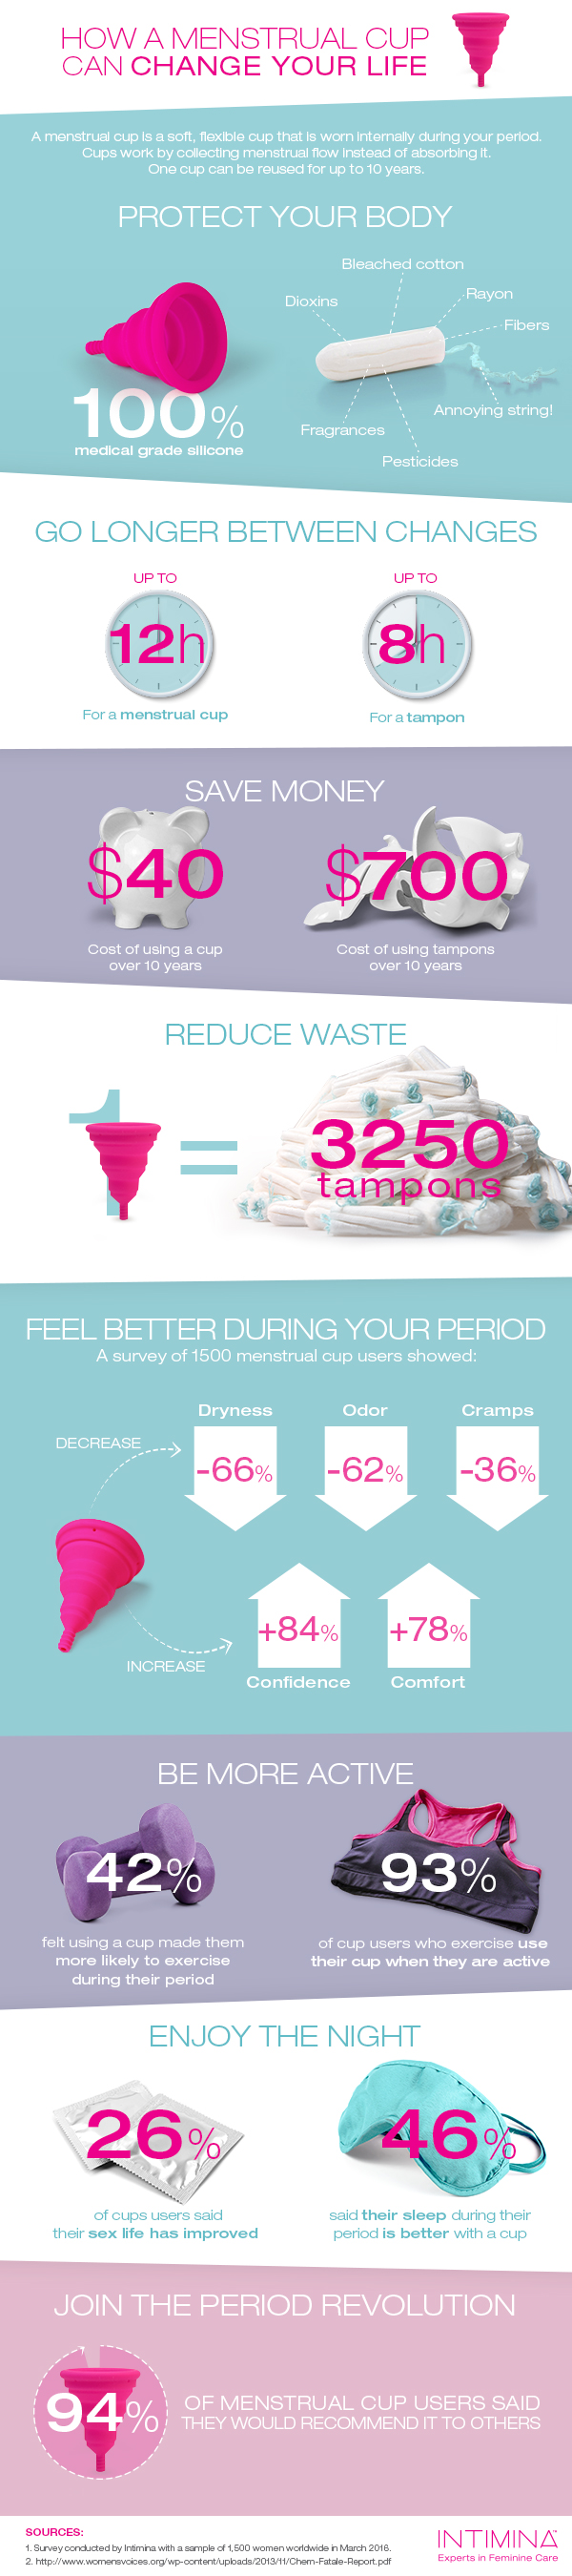 How a Menstrual Cup can change your life